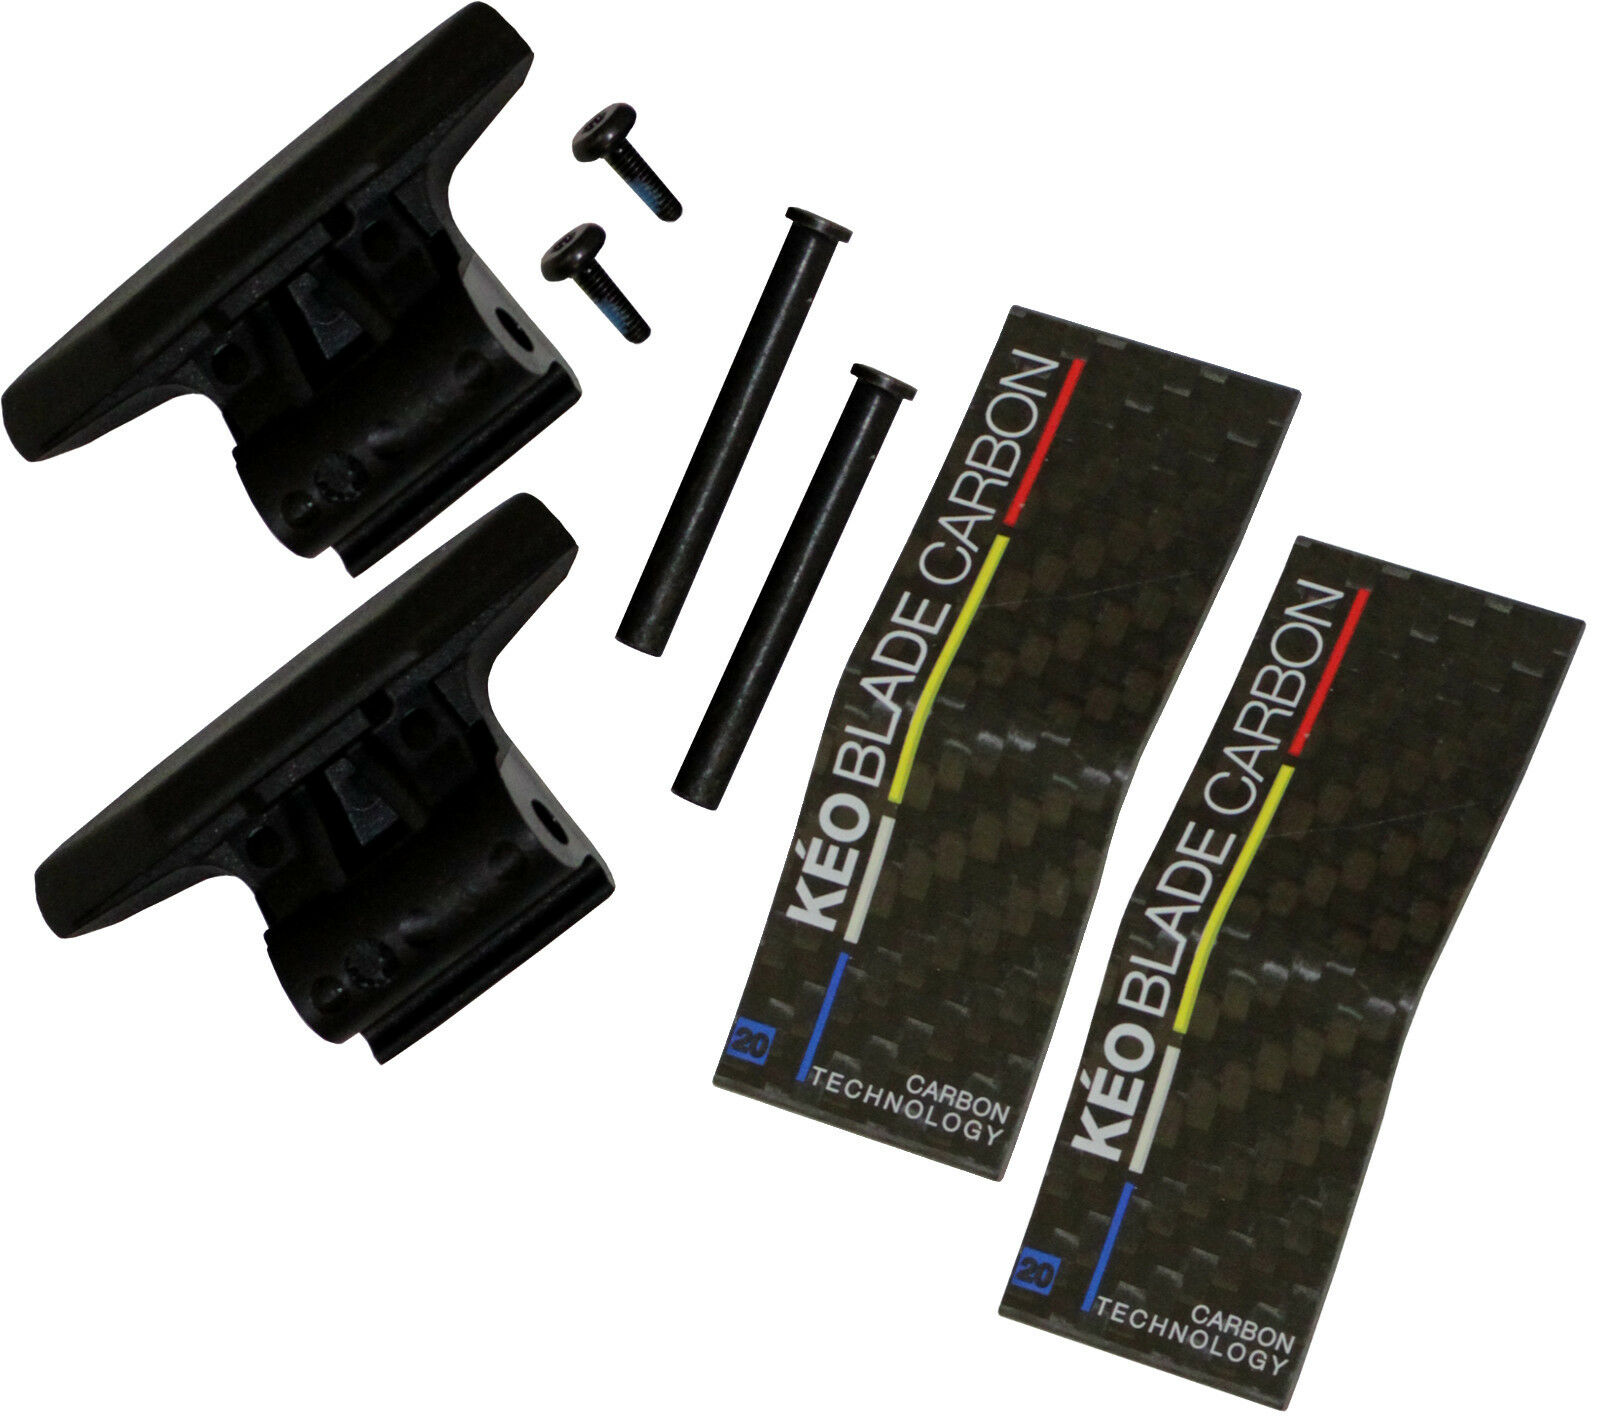 LOOK Keo Blade 2 Carbon Replacement Kit 20nm